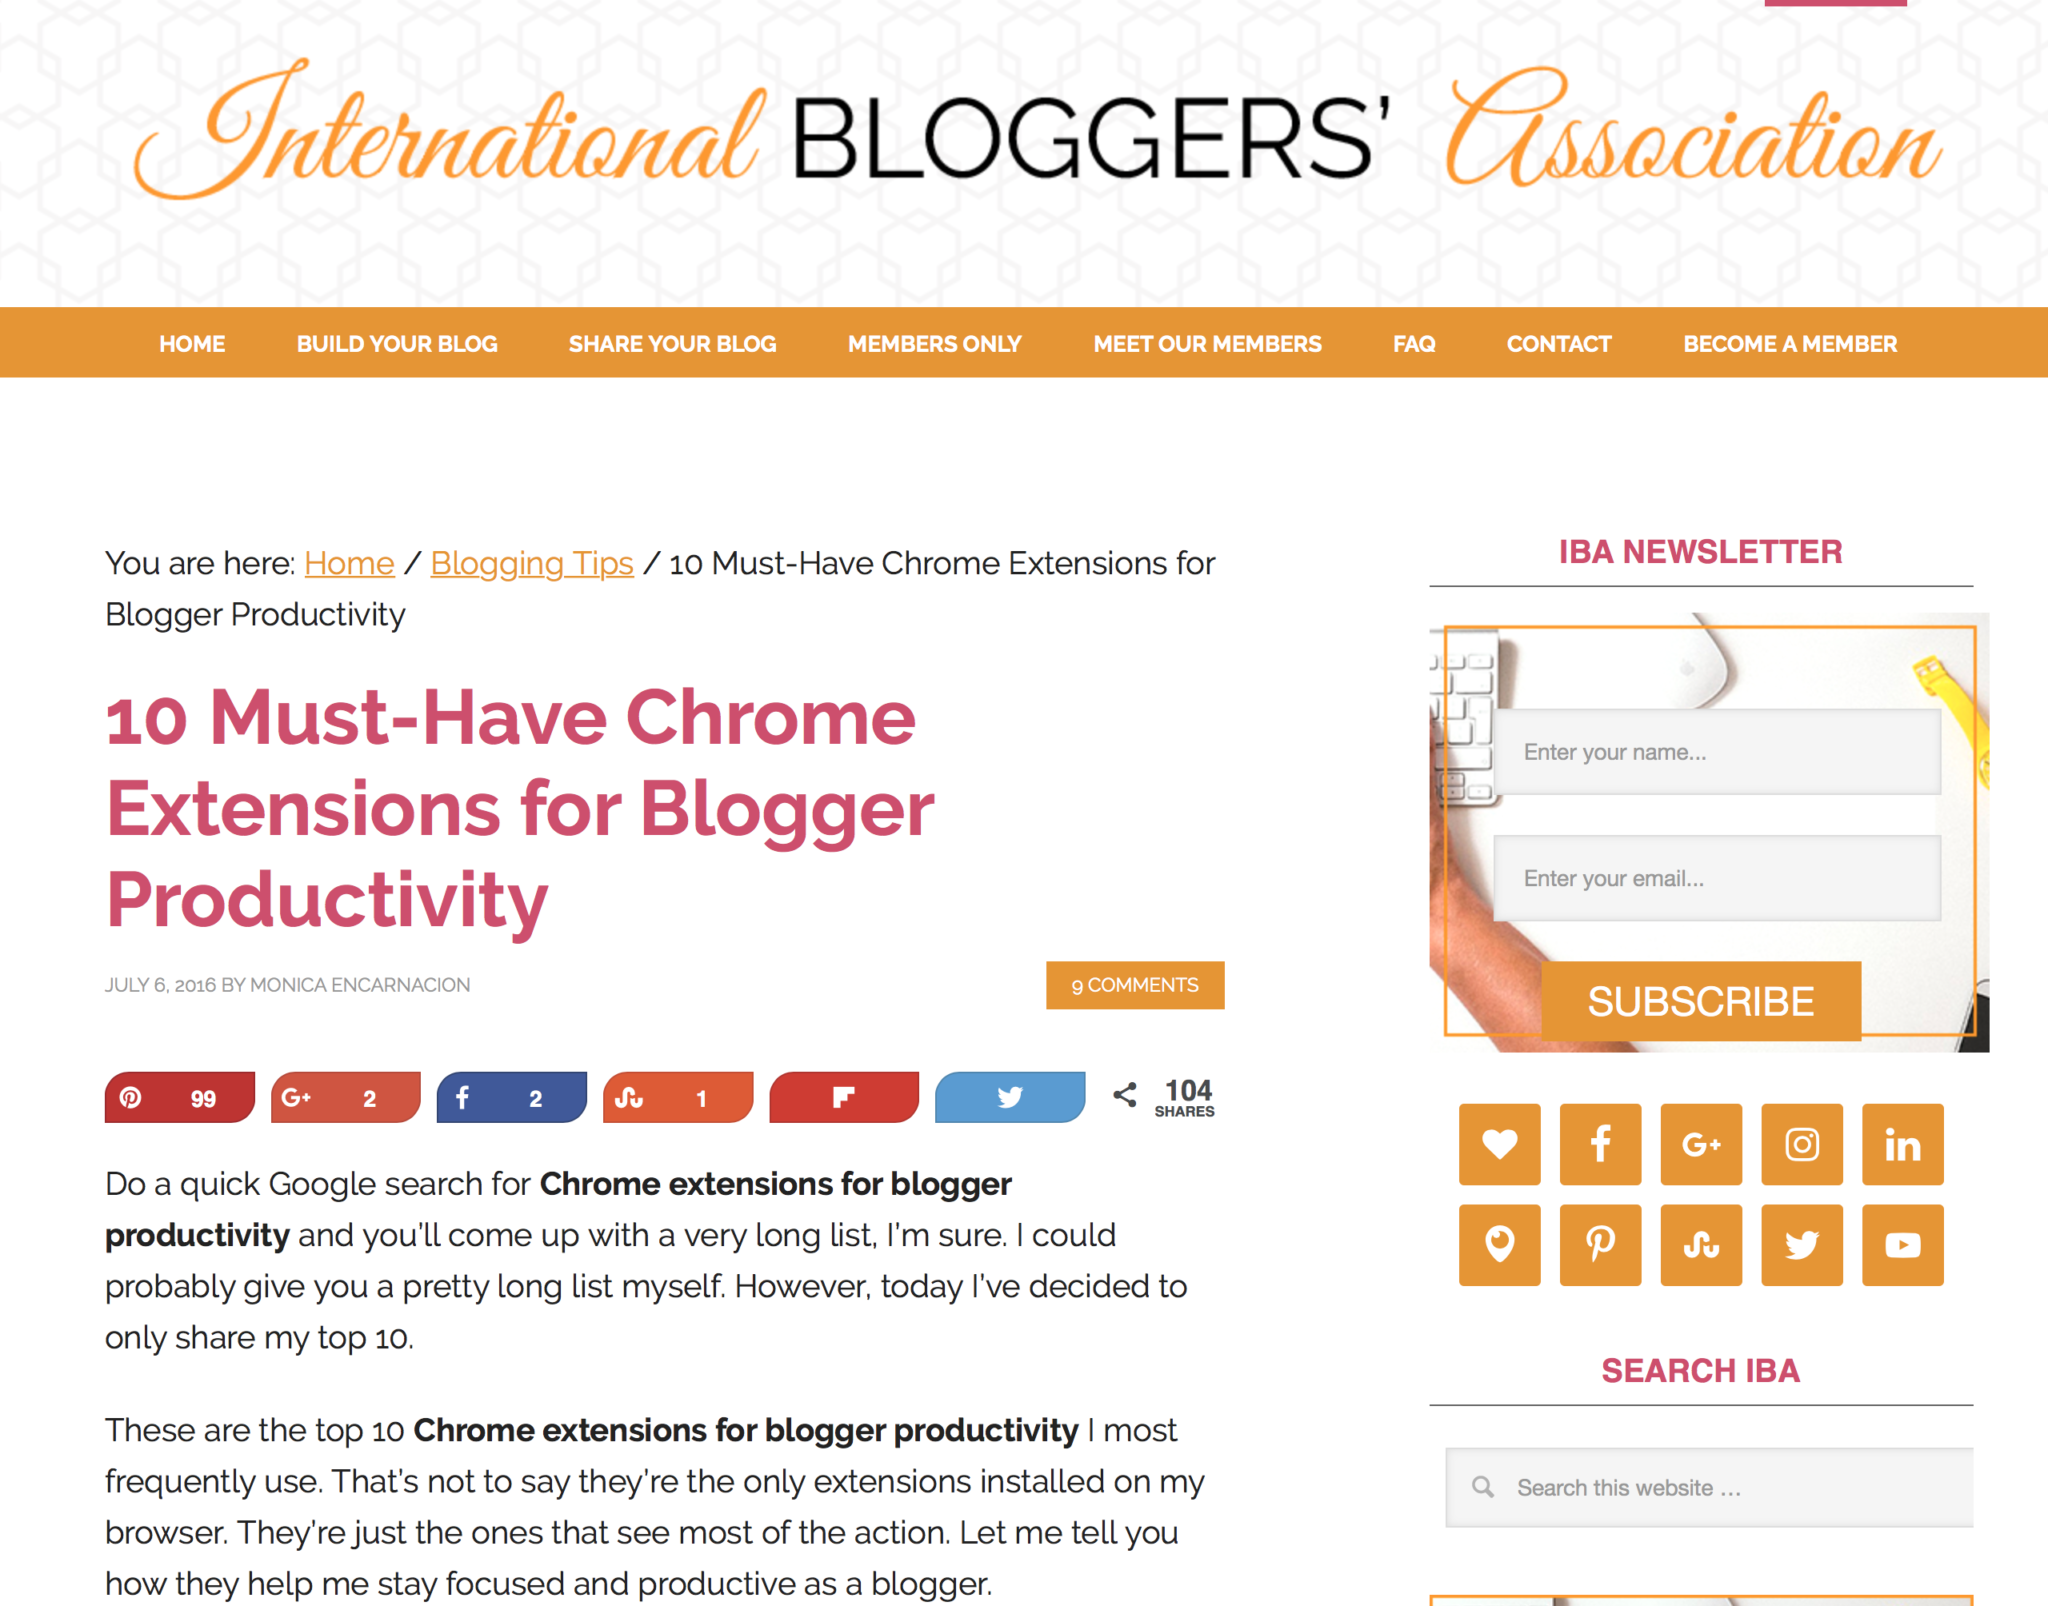 10 Must-Have Chrome Extensions for Blogger Productivity